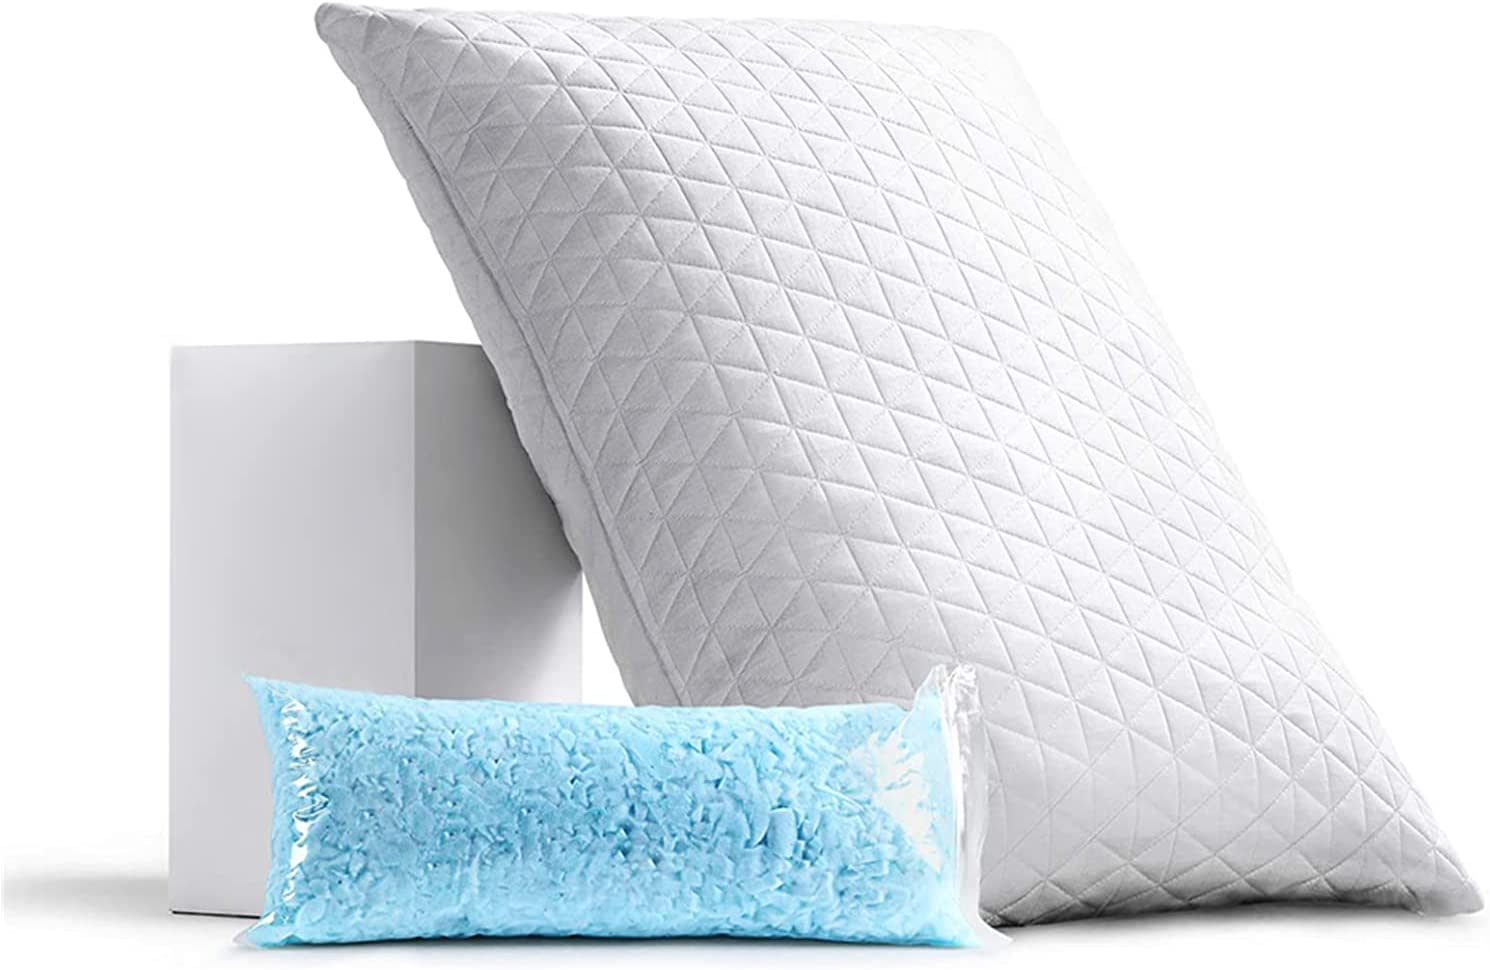 REMOCAHOME Adjustable Shredded Special sale item Memory Foam Pillow Bed Fees free King